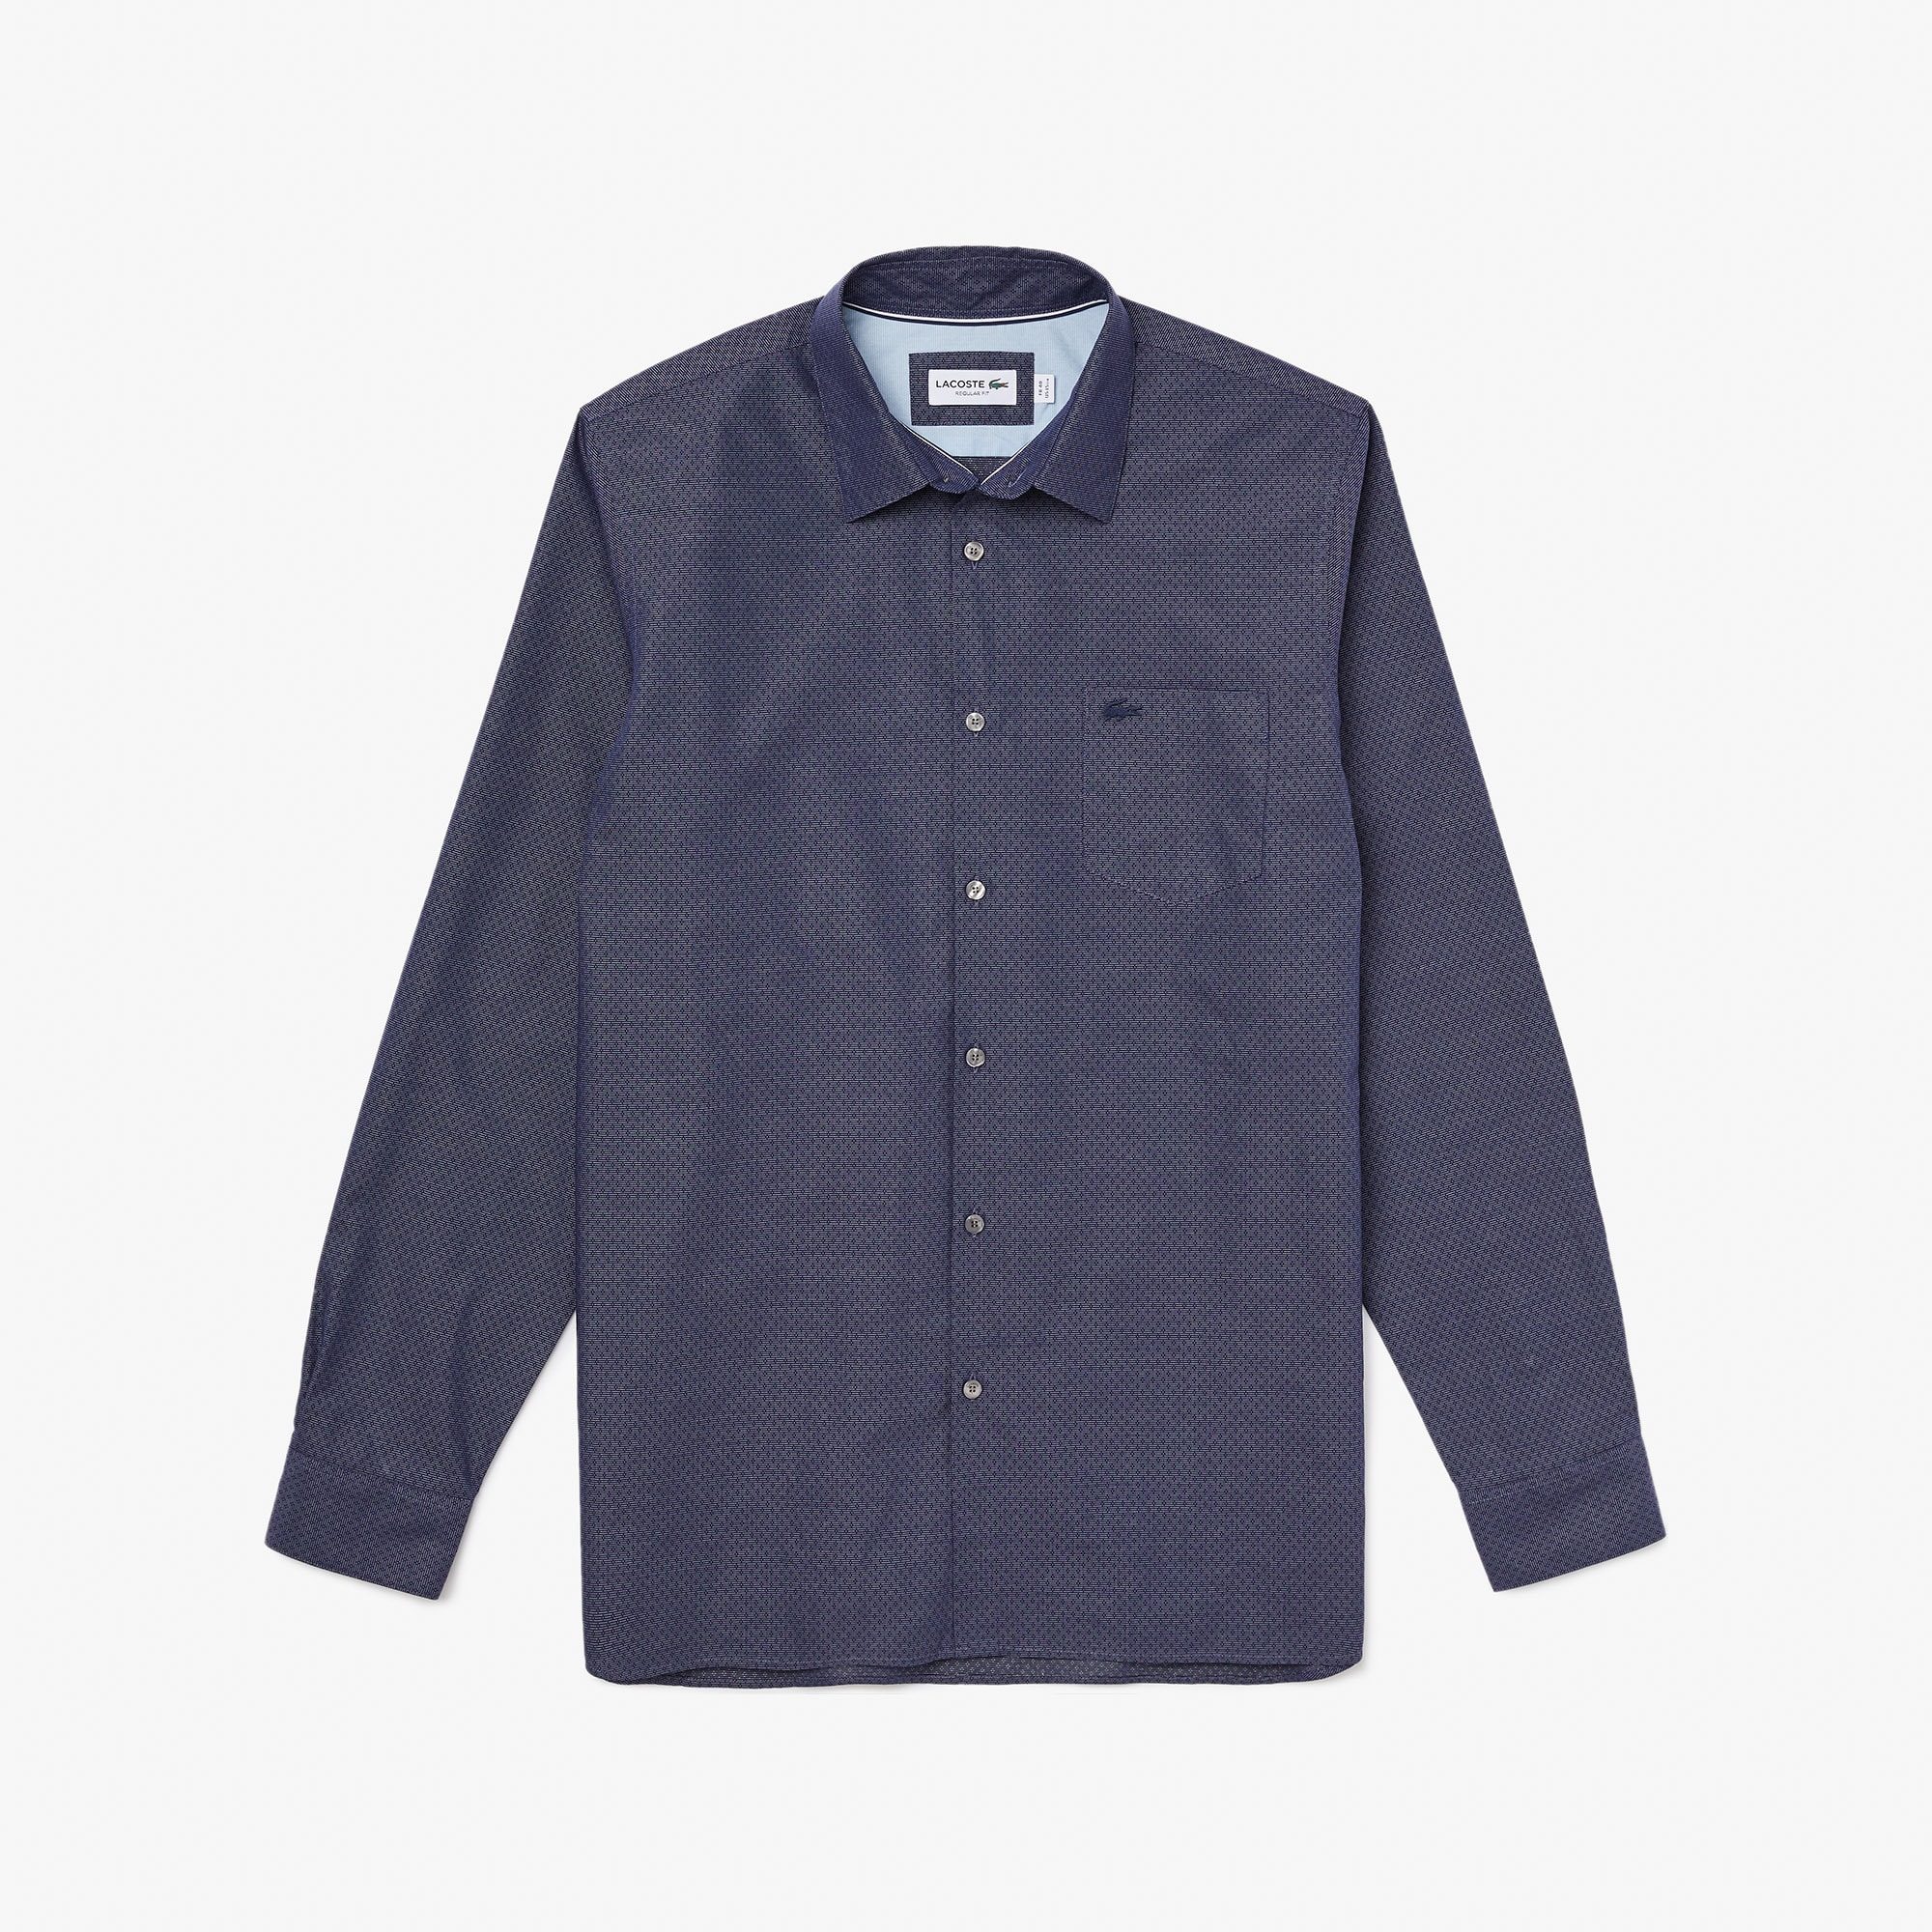 Men's Textured Cotton Shirt